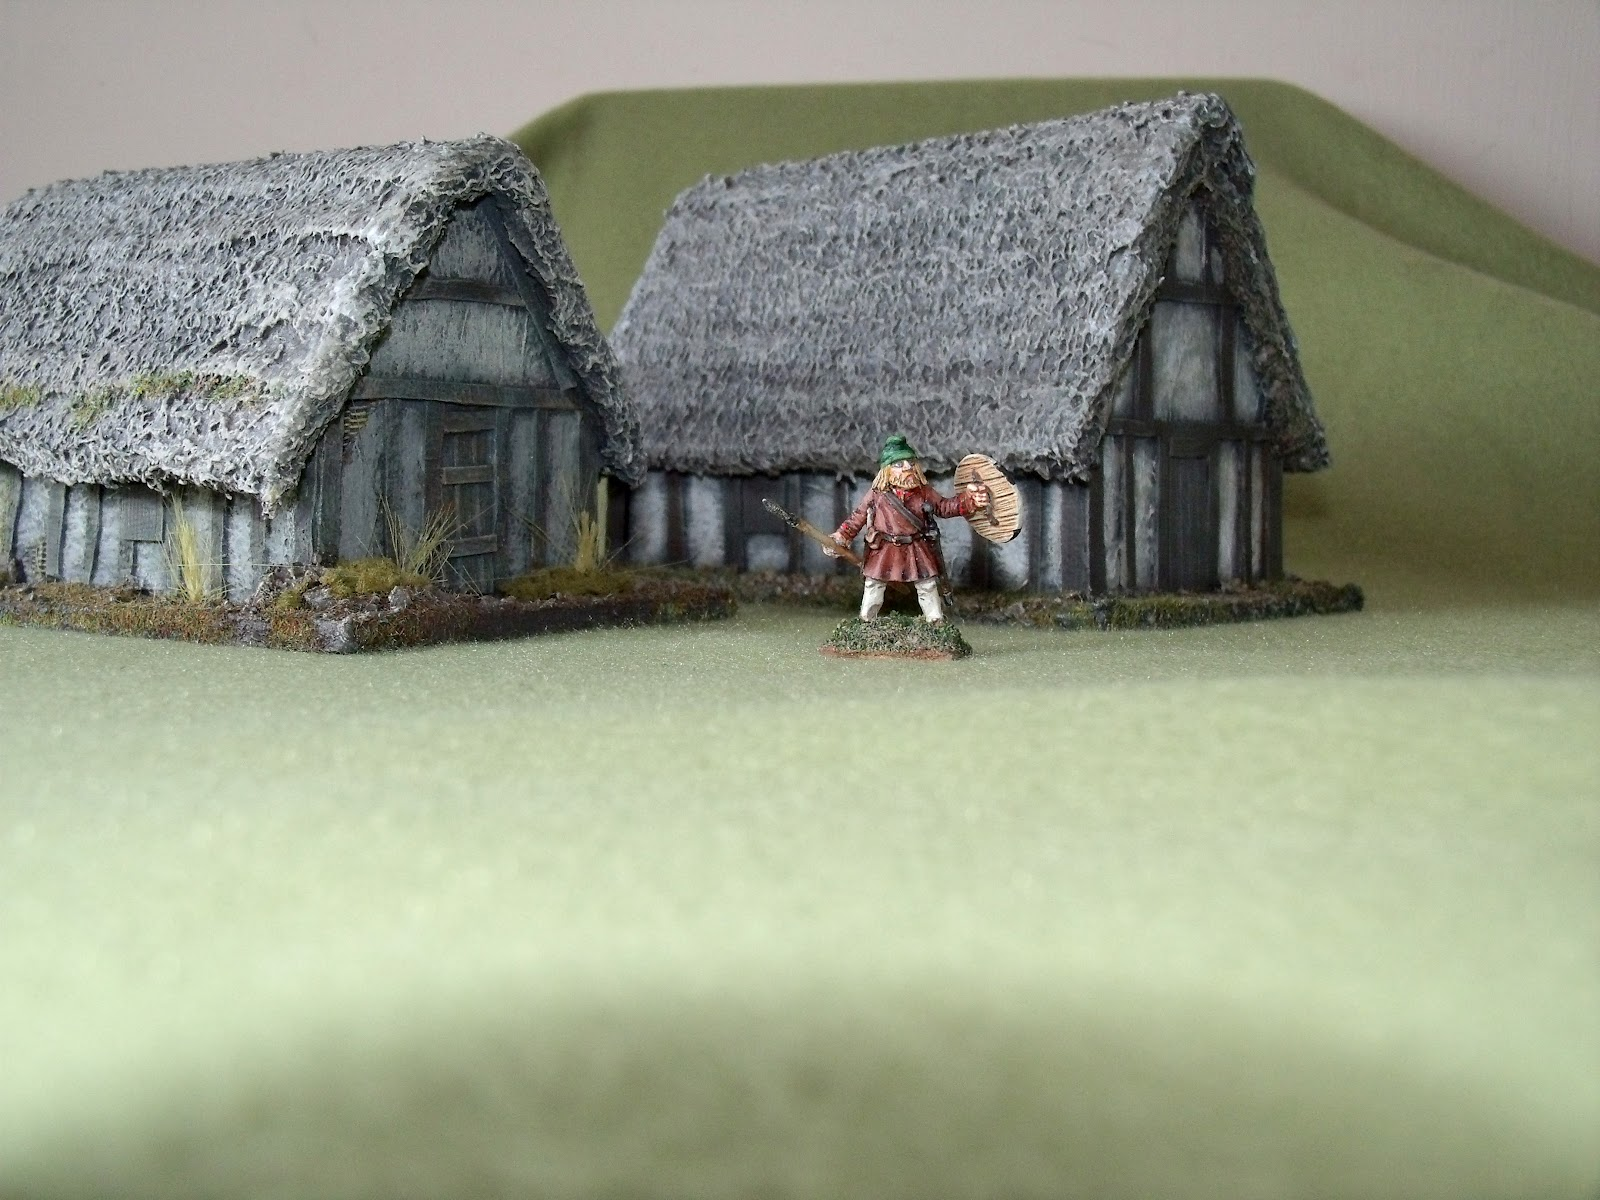 Mitch S Wargaming And Modelmaking Sub Roman Buildings 1